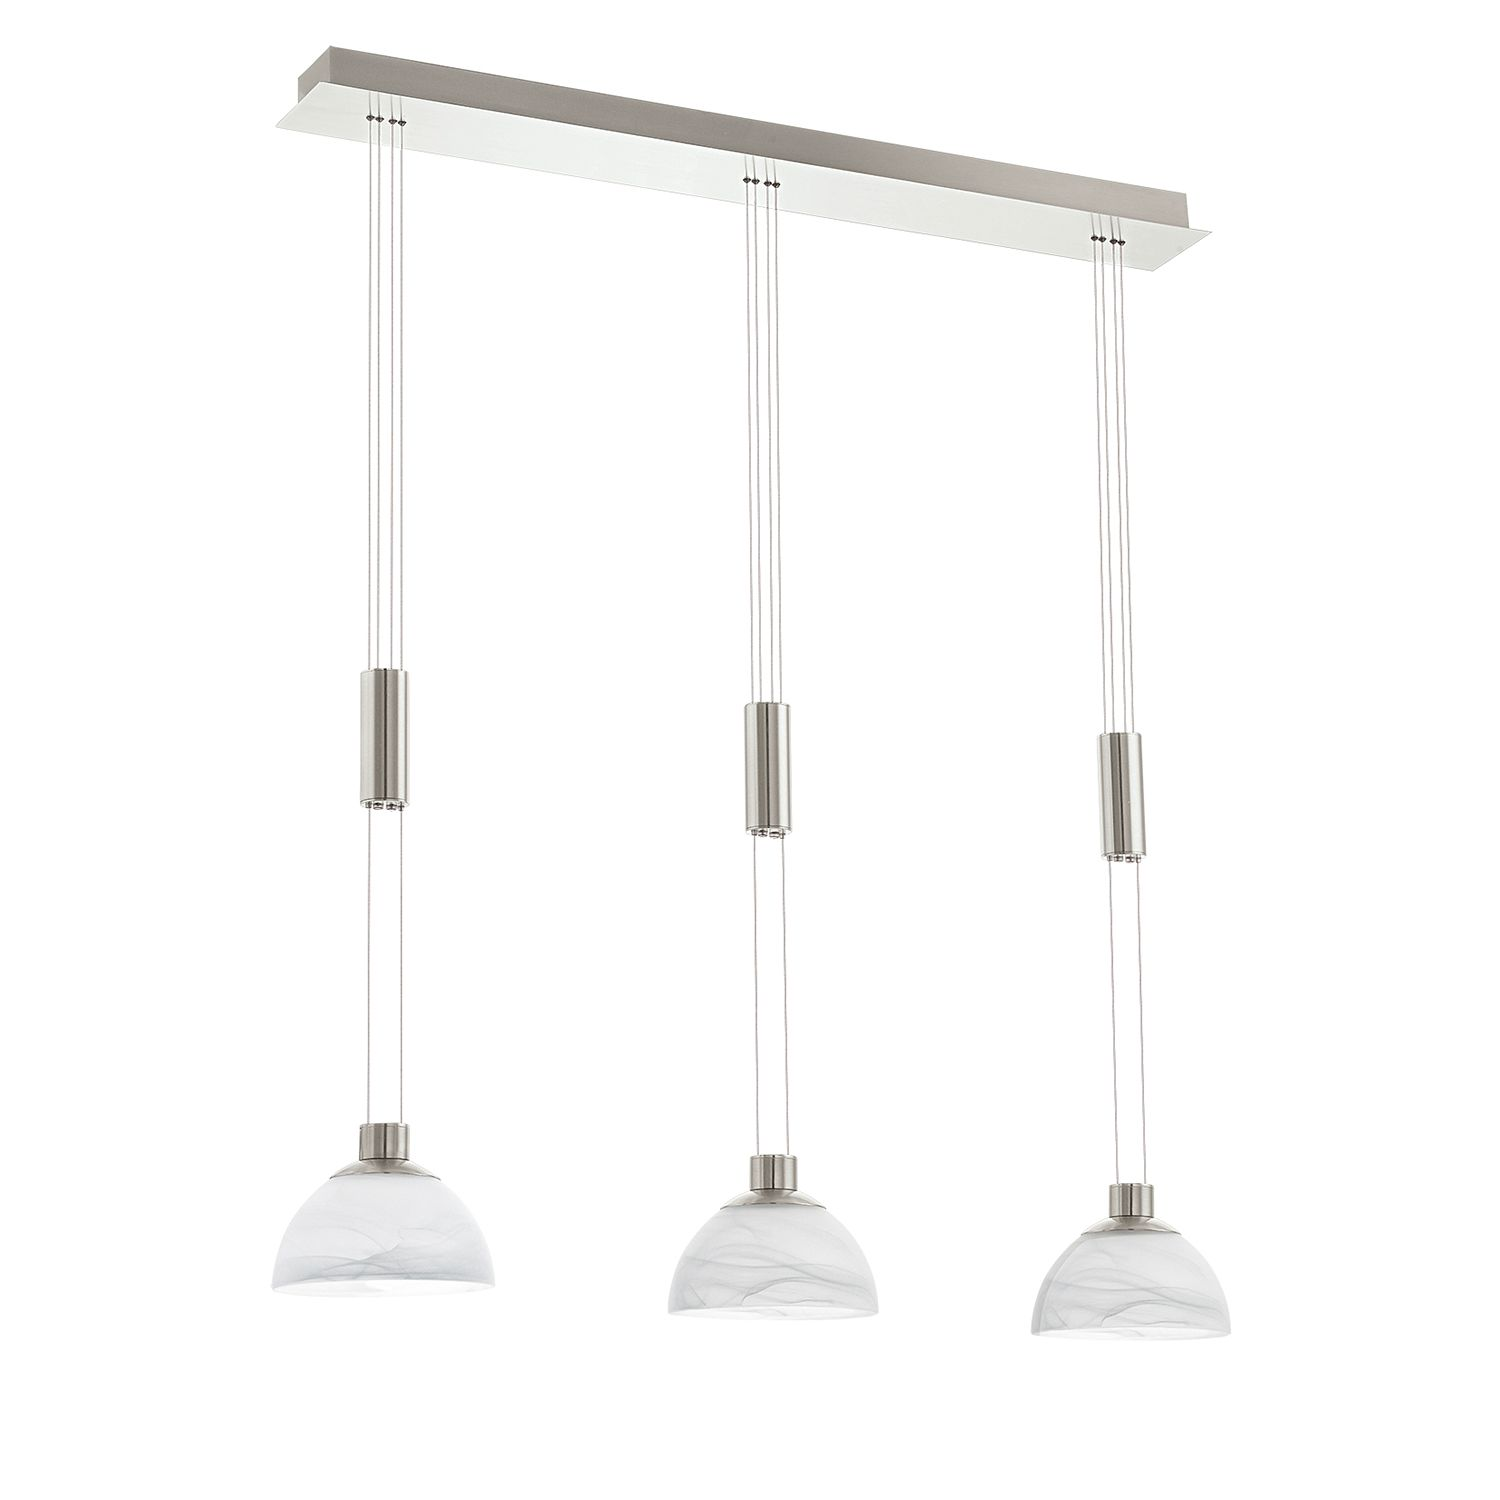 Suspension LED Montefio II